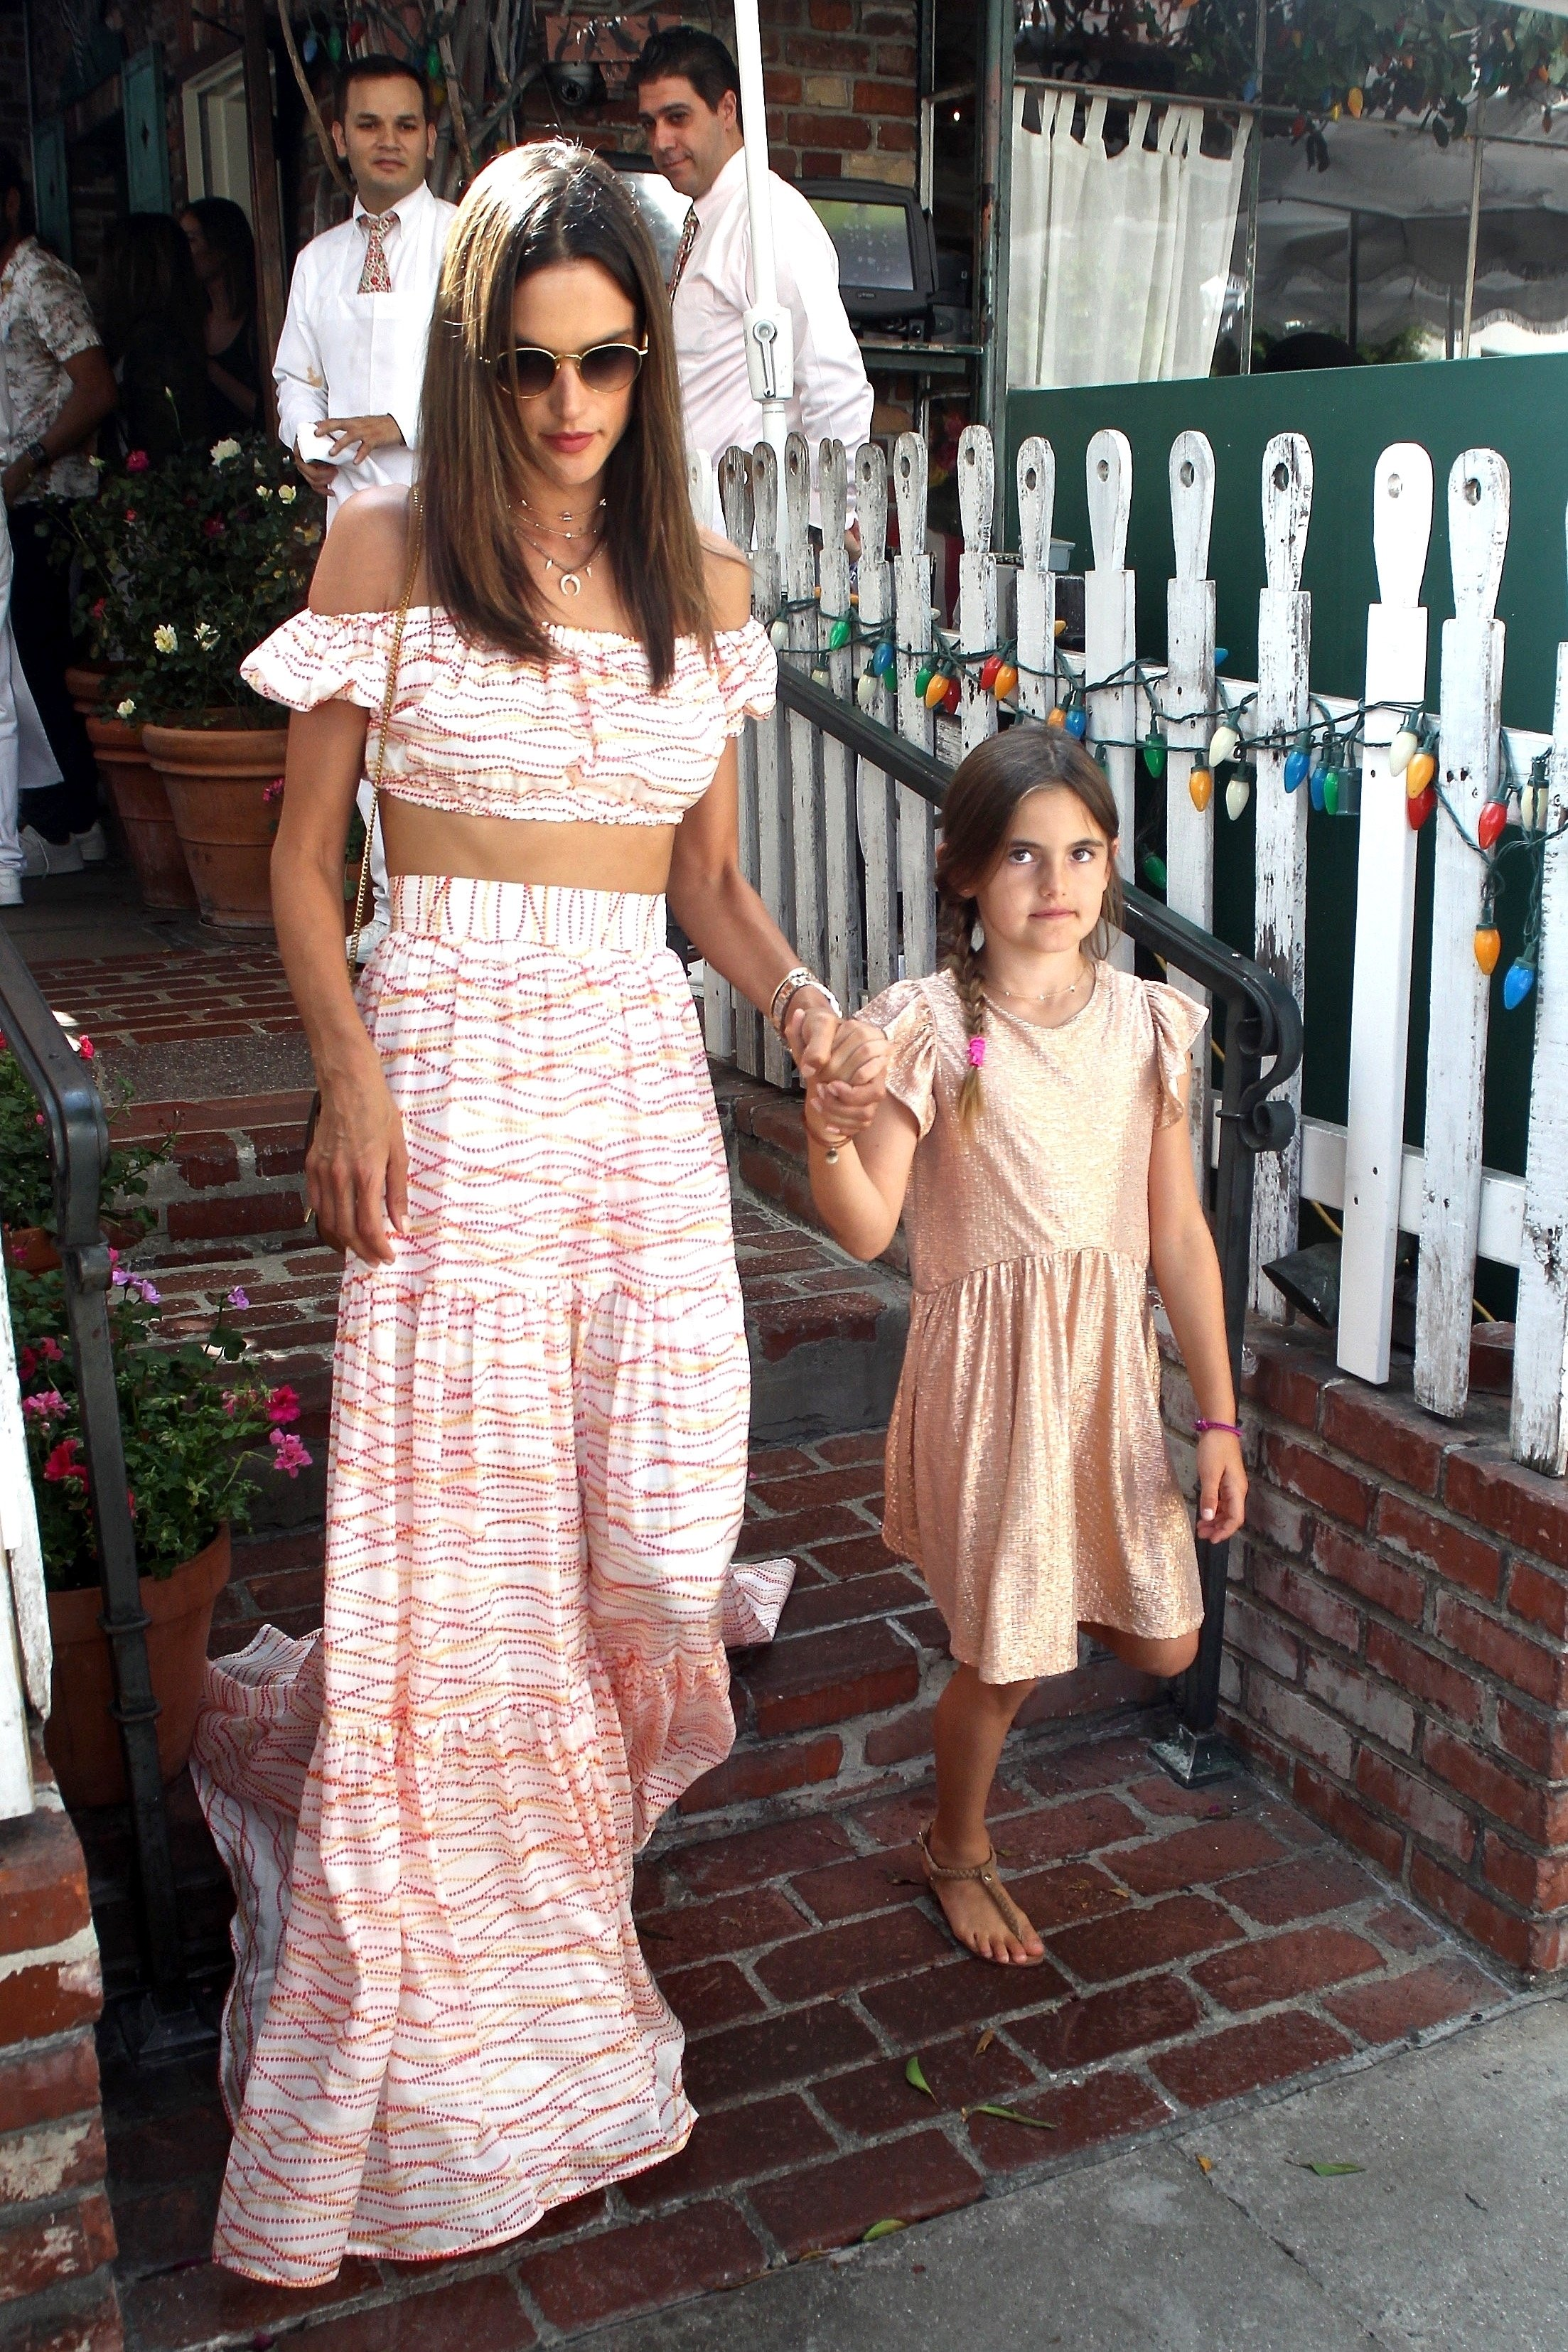 West Hollywood, CA  - Alessandra Ambrosio exits The Ivy after having lunch with her daughter Anja for her 9th birthday.  Anja was all smiles and holding her her mom's hand on the way out to get through the crowds.  Pictured: Alessandra Ambrosio  BACKGRID USA 24 AUGUST 2017, Image: 346405995, License: Rights-managed, Restrictions: , Model Release: no, Credit line: Profimedia, AKM-GSI